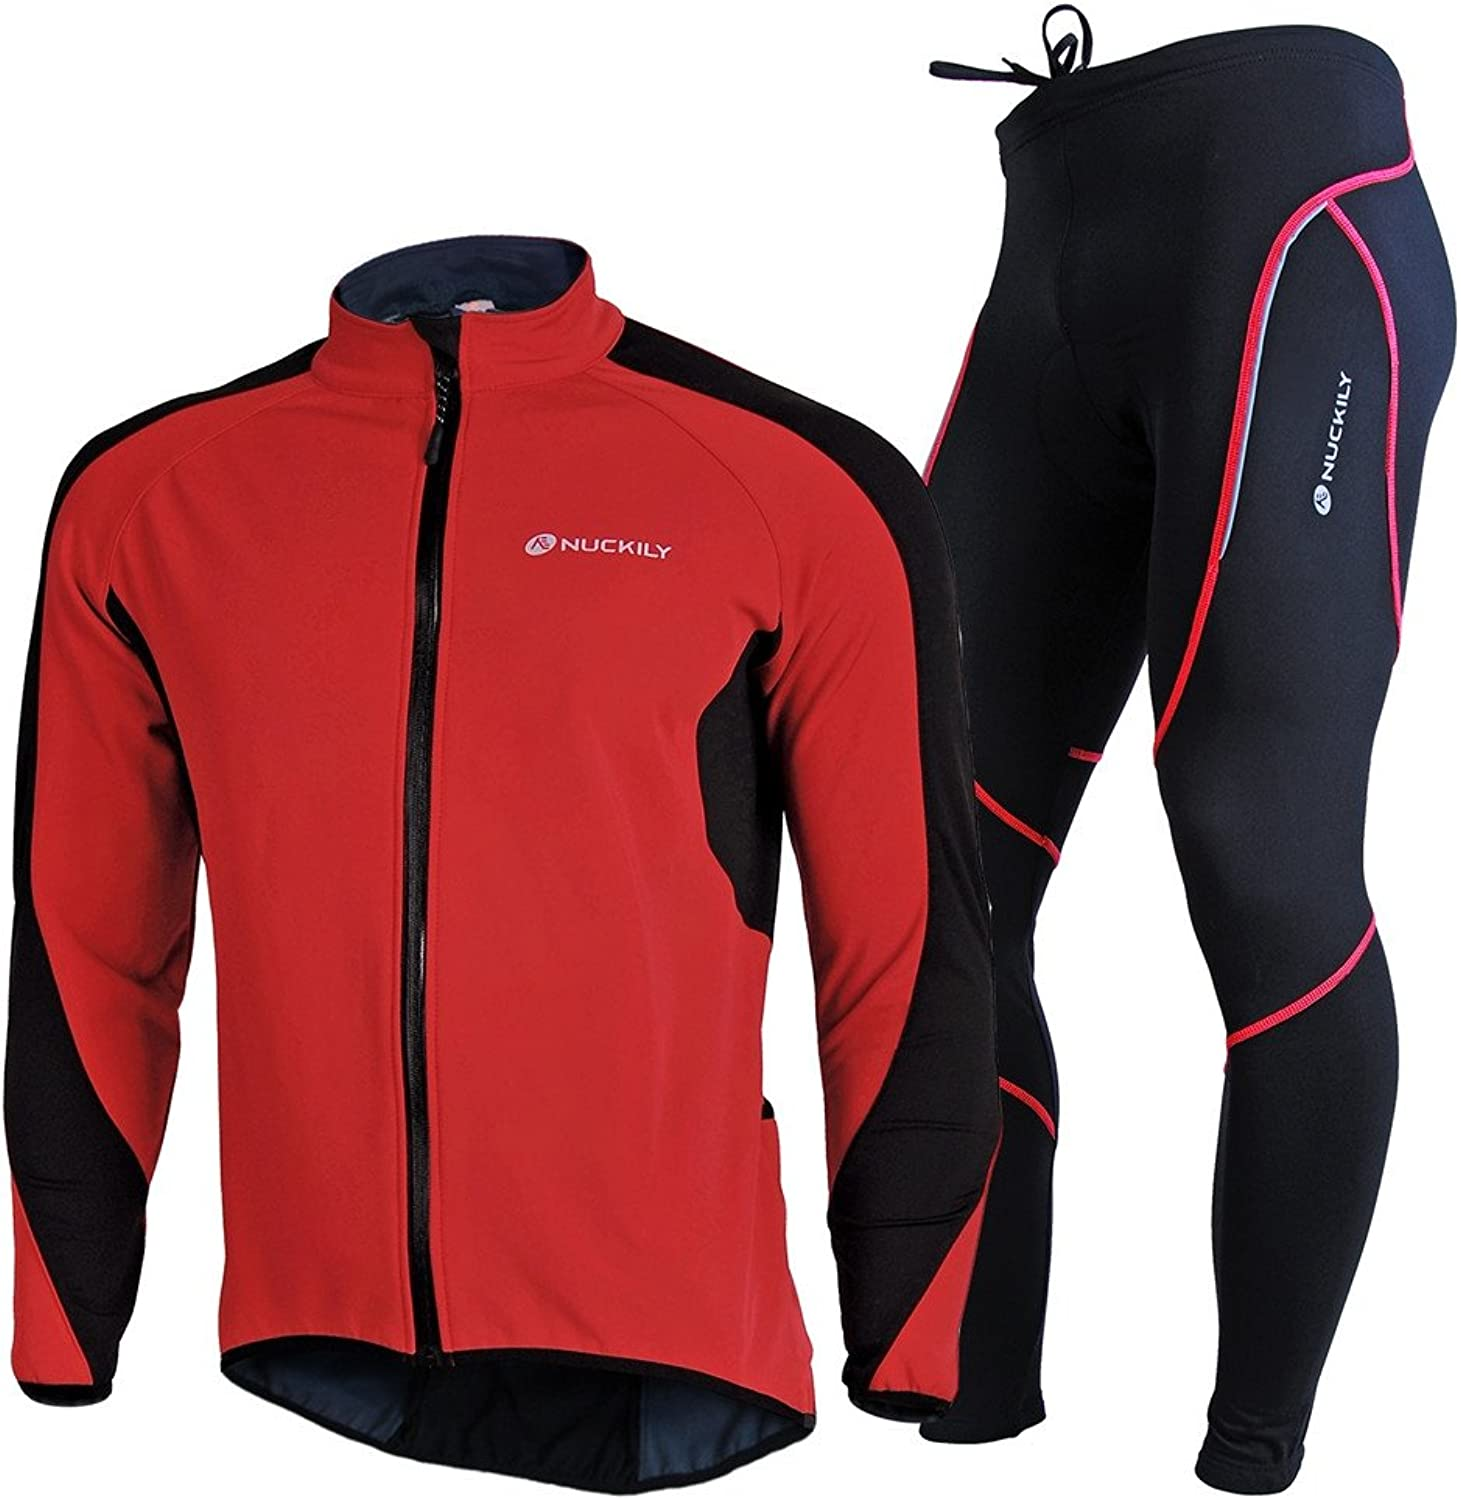 559326a85 NUCKILY Men's Bicycle Jersey Suit Windproof Riding Composite Fleece Jacket  Set Cycling Tights nzbtbv4388-Sporting goods